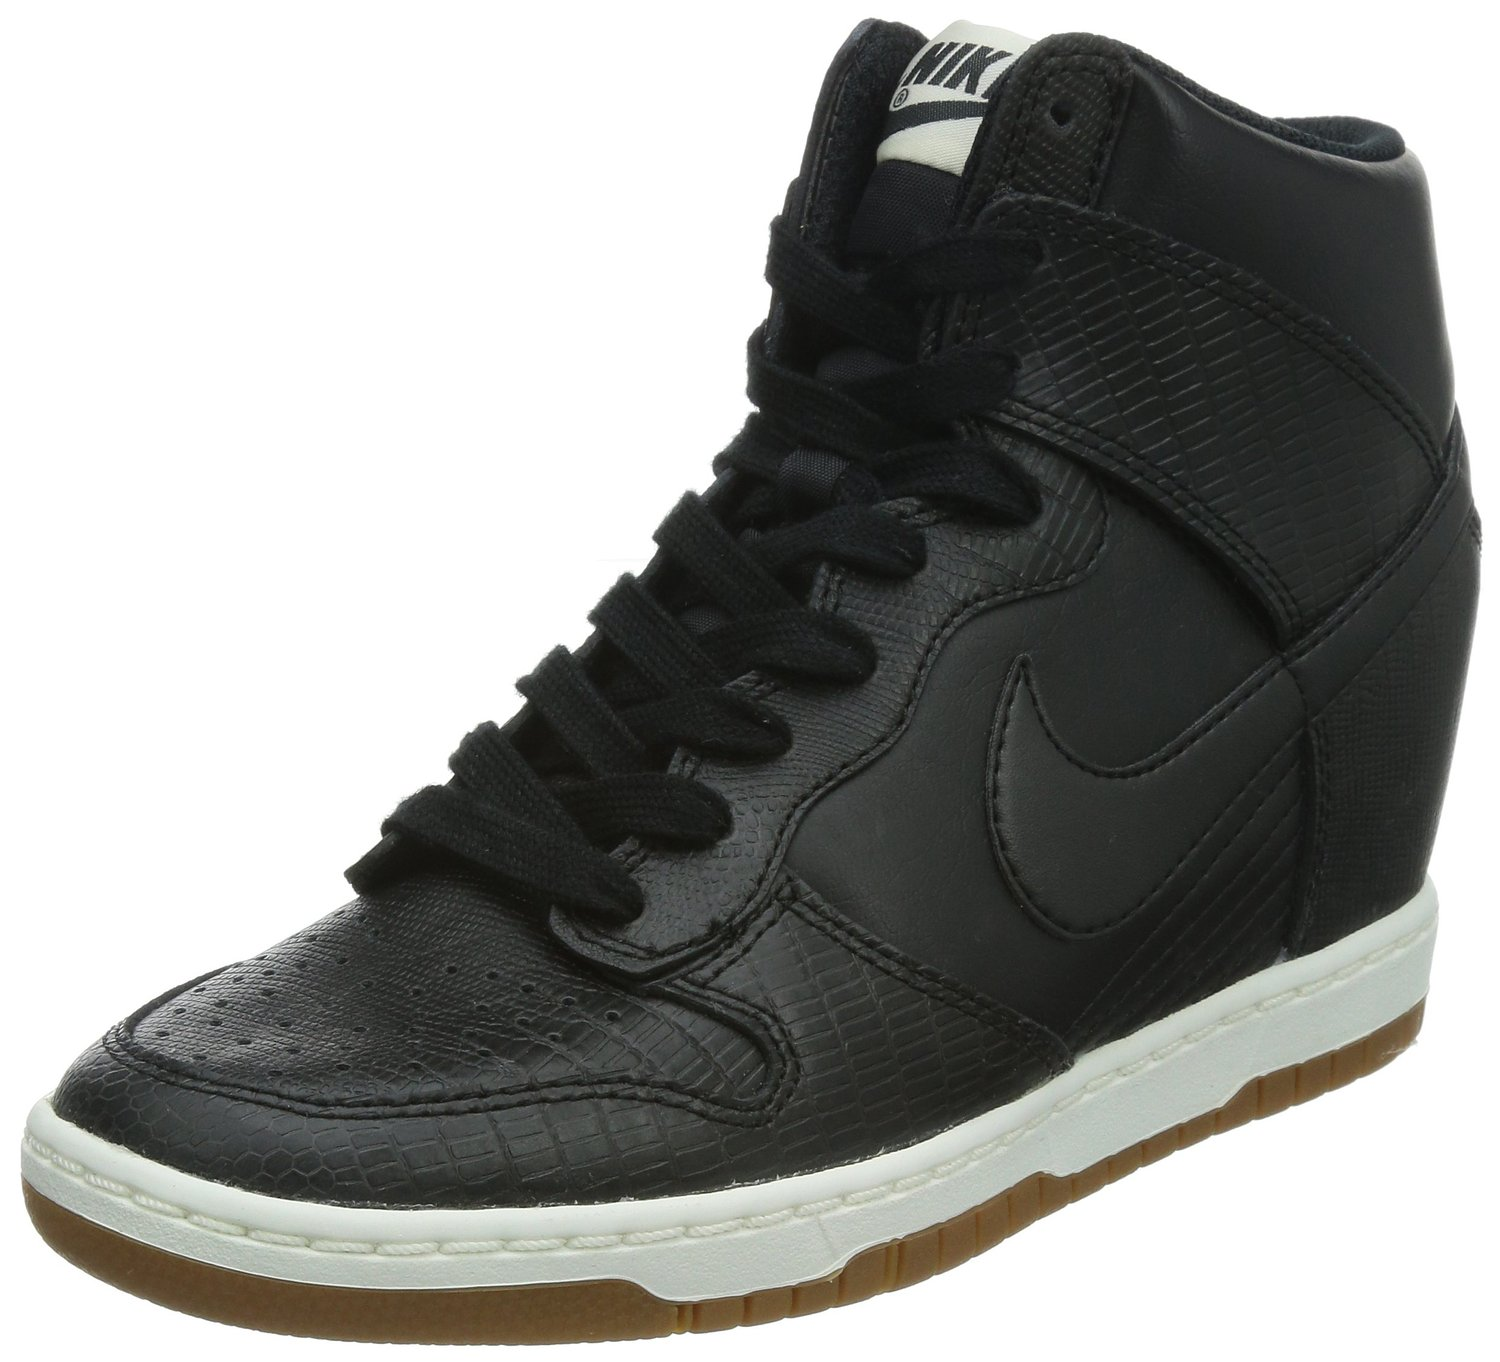 nike dunk sky hi sneaker. Black Bedroom Furniture Sets. Home Design Ideas